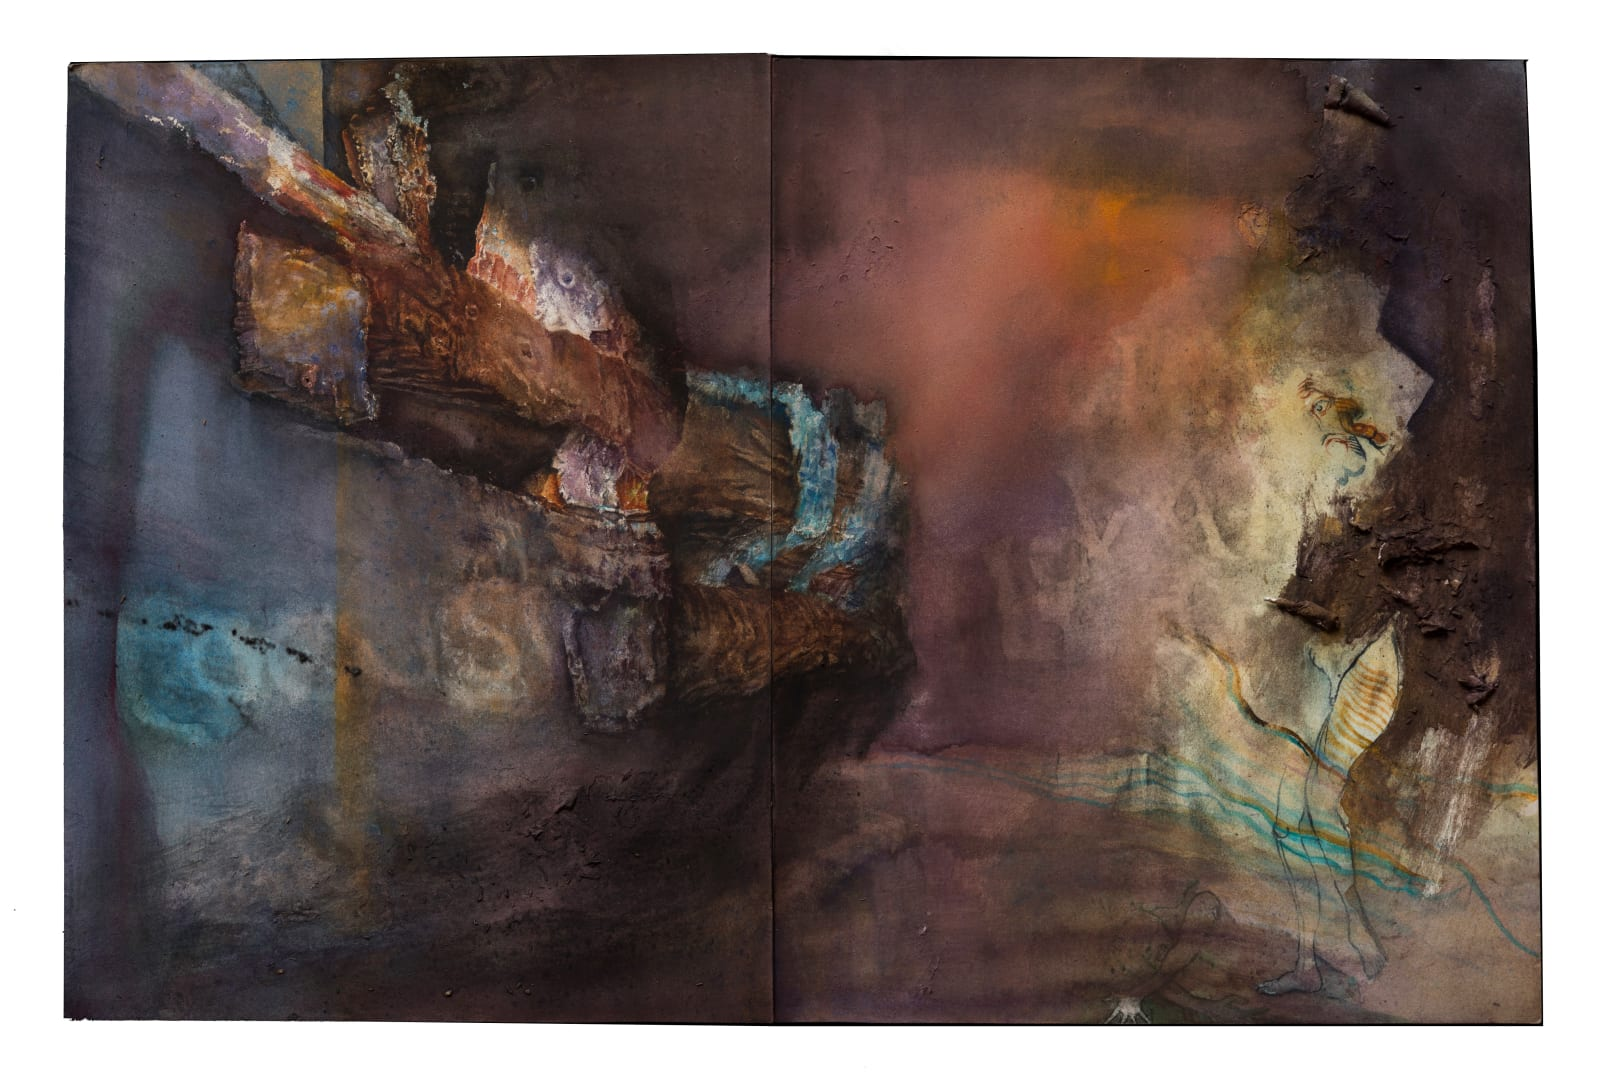 Liminatus Messiaen, 2016 -2020 Watercolor, Conté crayon, and charcoal on pieced paper. 14 x 21.25 in. (TM 31) $4,500